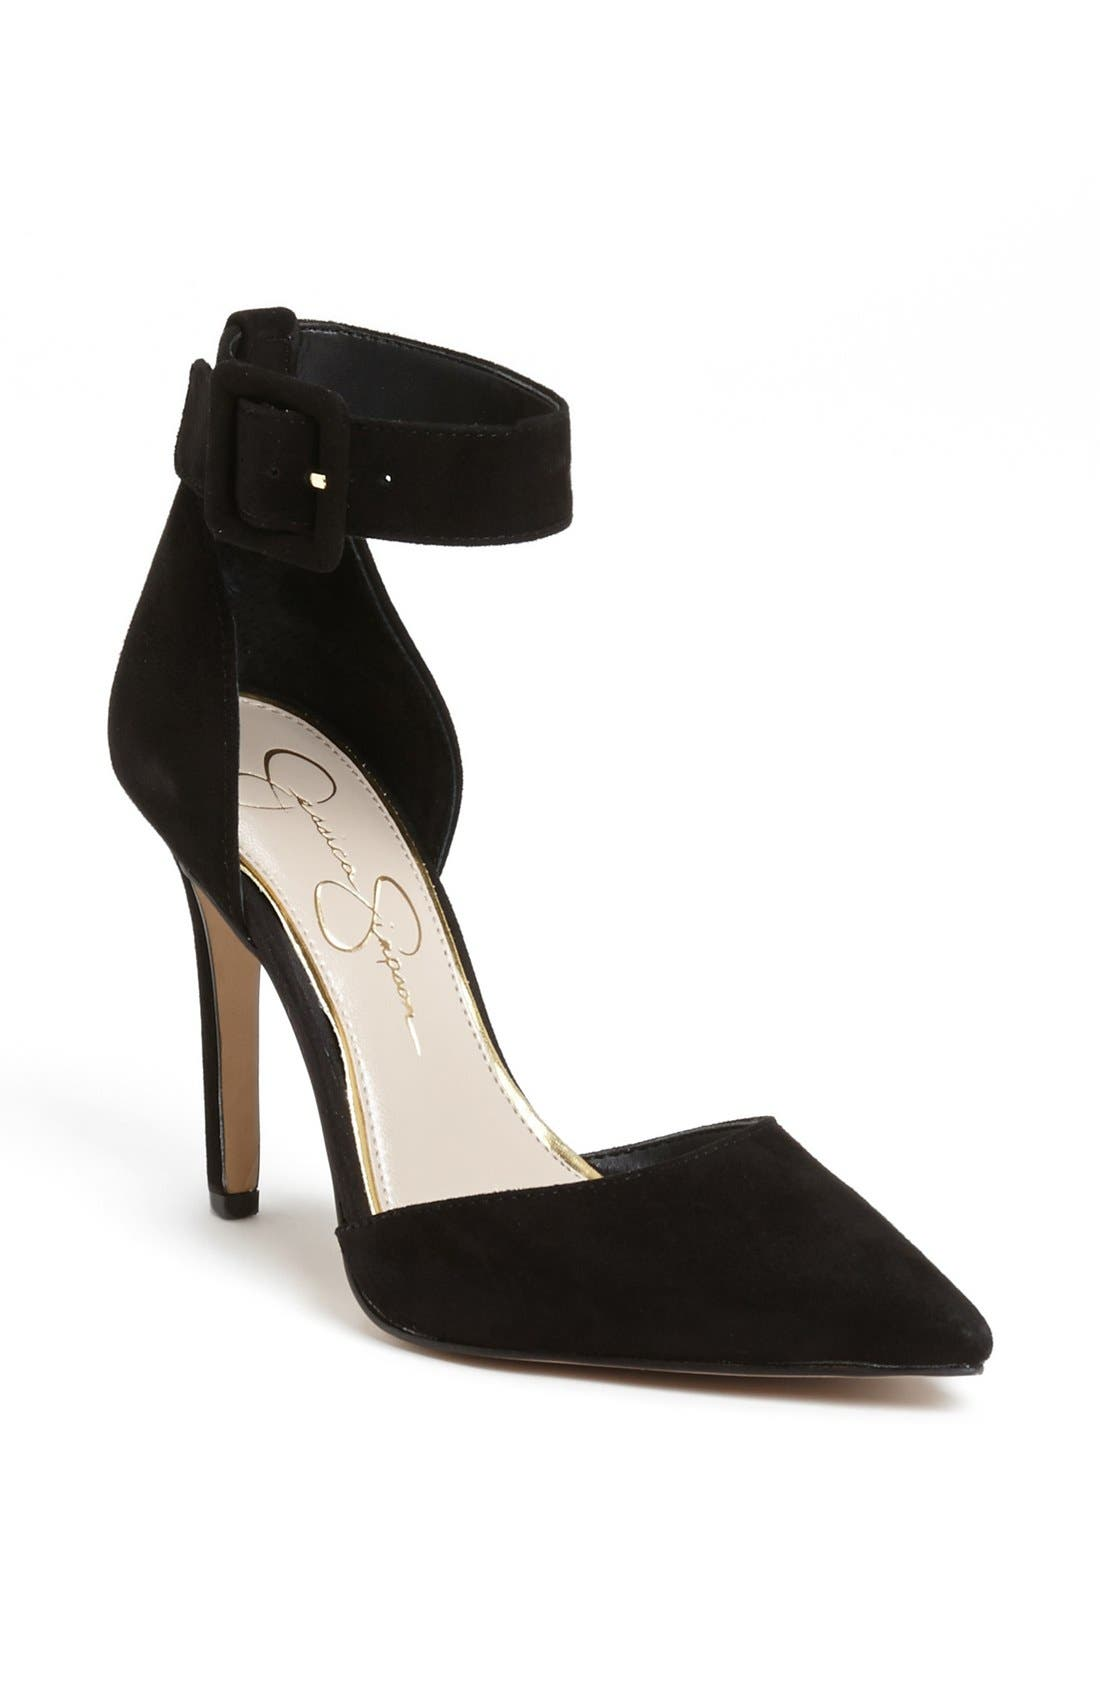 Main Image - Jessica Simpson 'Cayna' D'Orsay Ankle Strap Pump